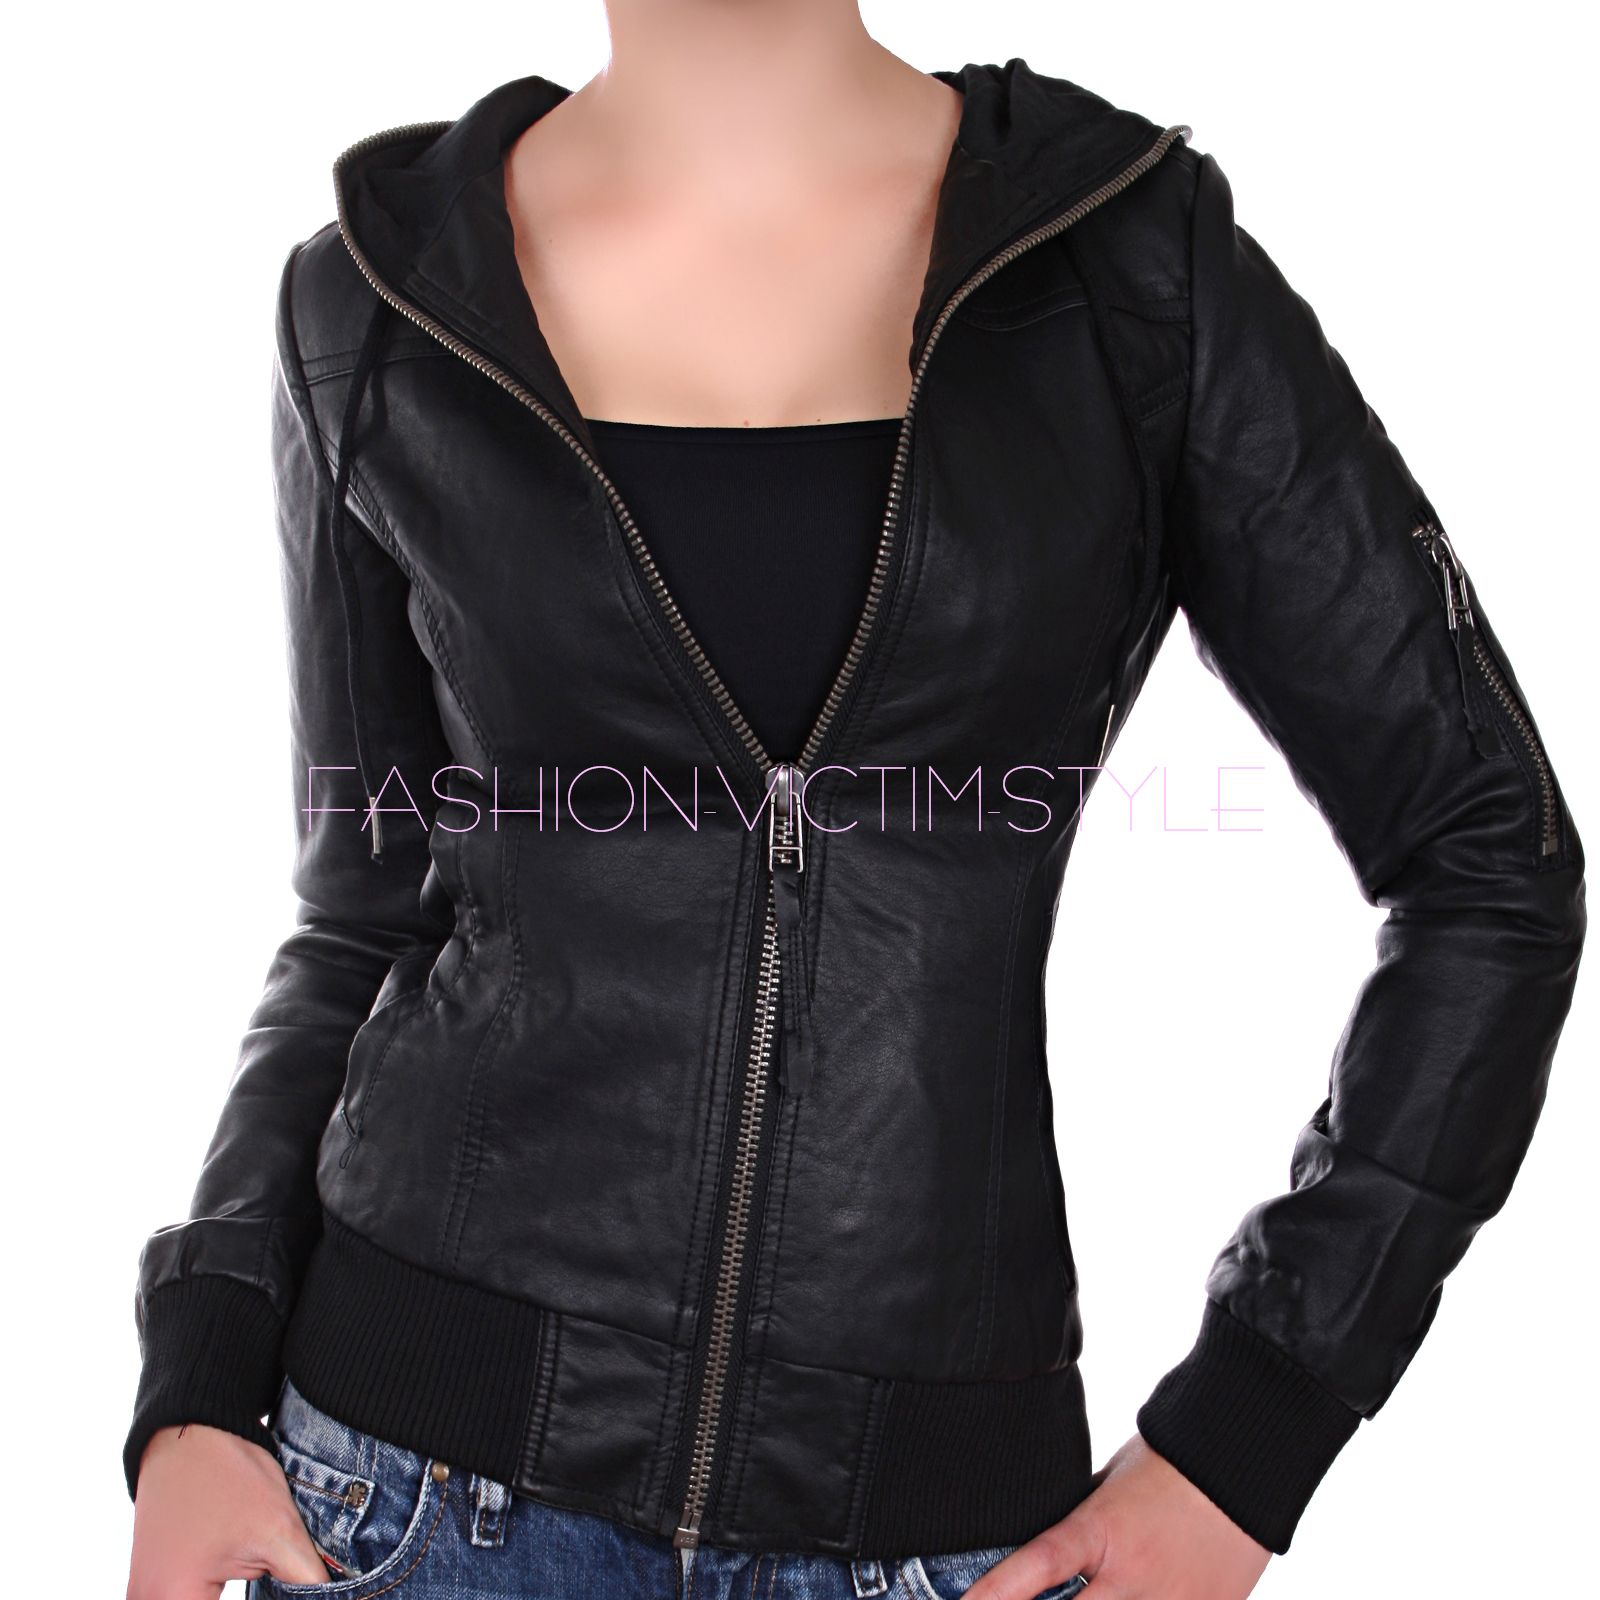 damen kunst lederjacke biker jacke kapuzen jacke jacket schwarz 34 36 38 40 42 ebay. Black Bedroom Furniture Sets. Home Design Ideas